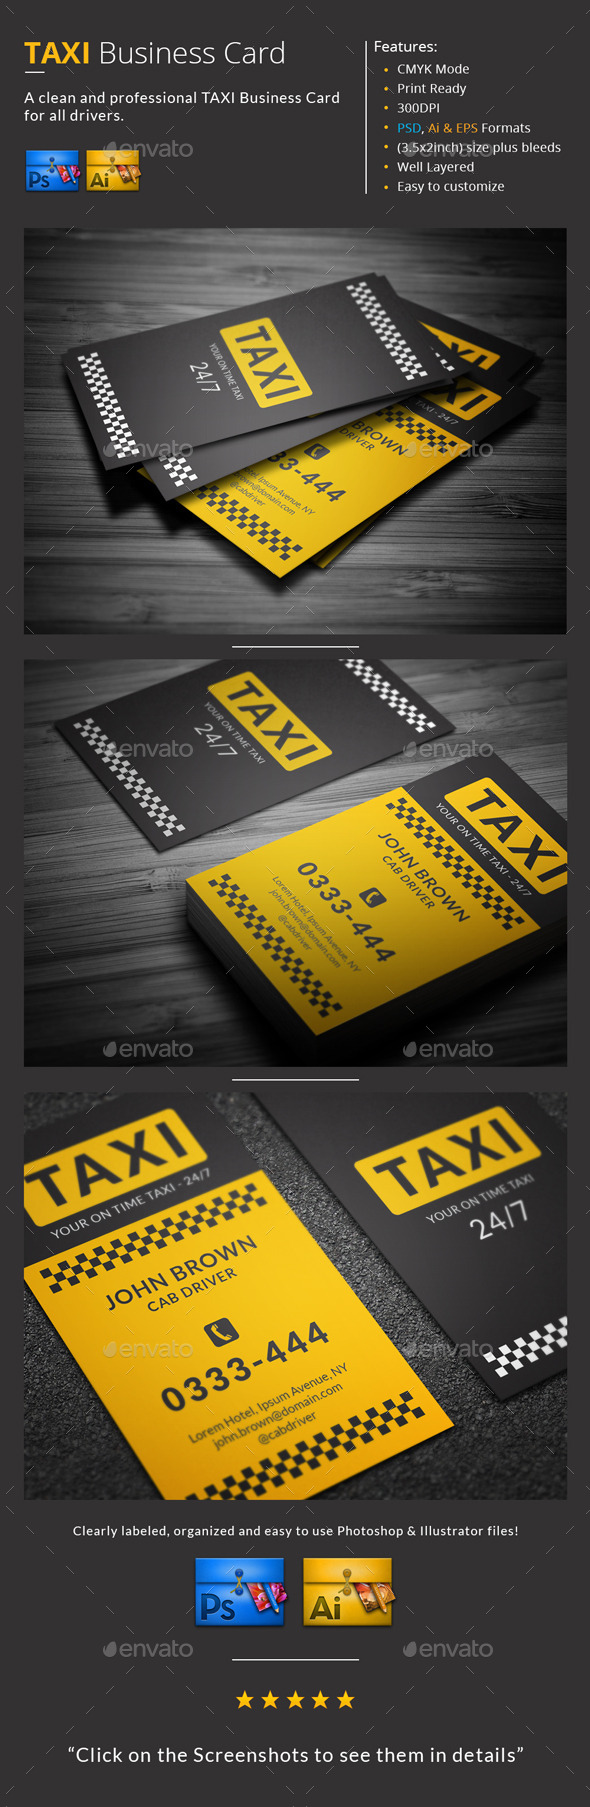 Taxi Business Card by MR-Design | GraphicRiver